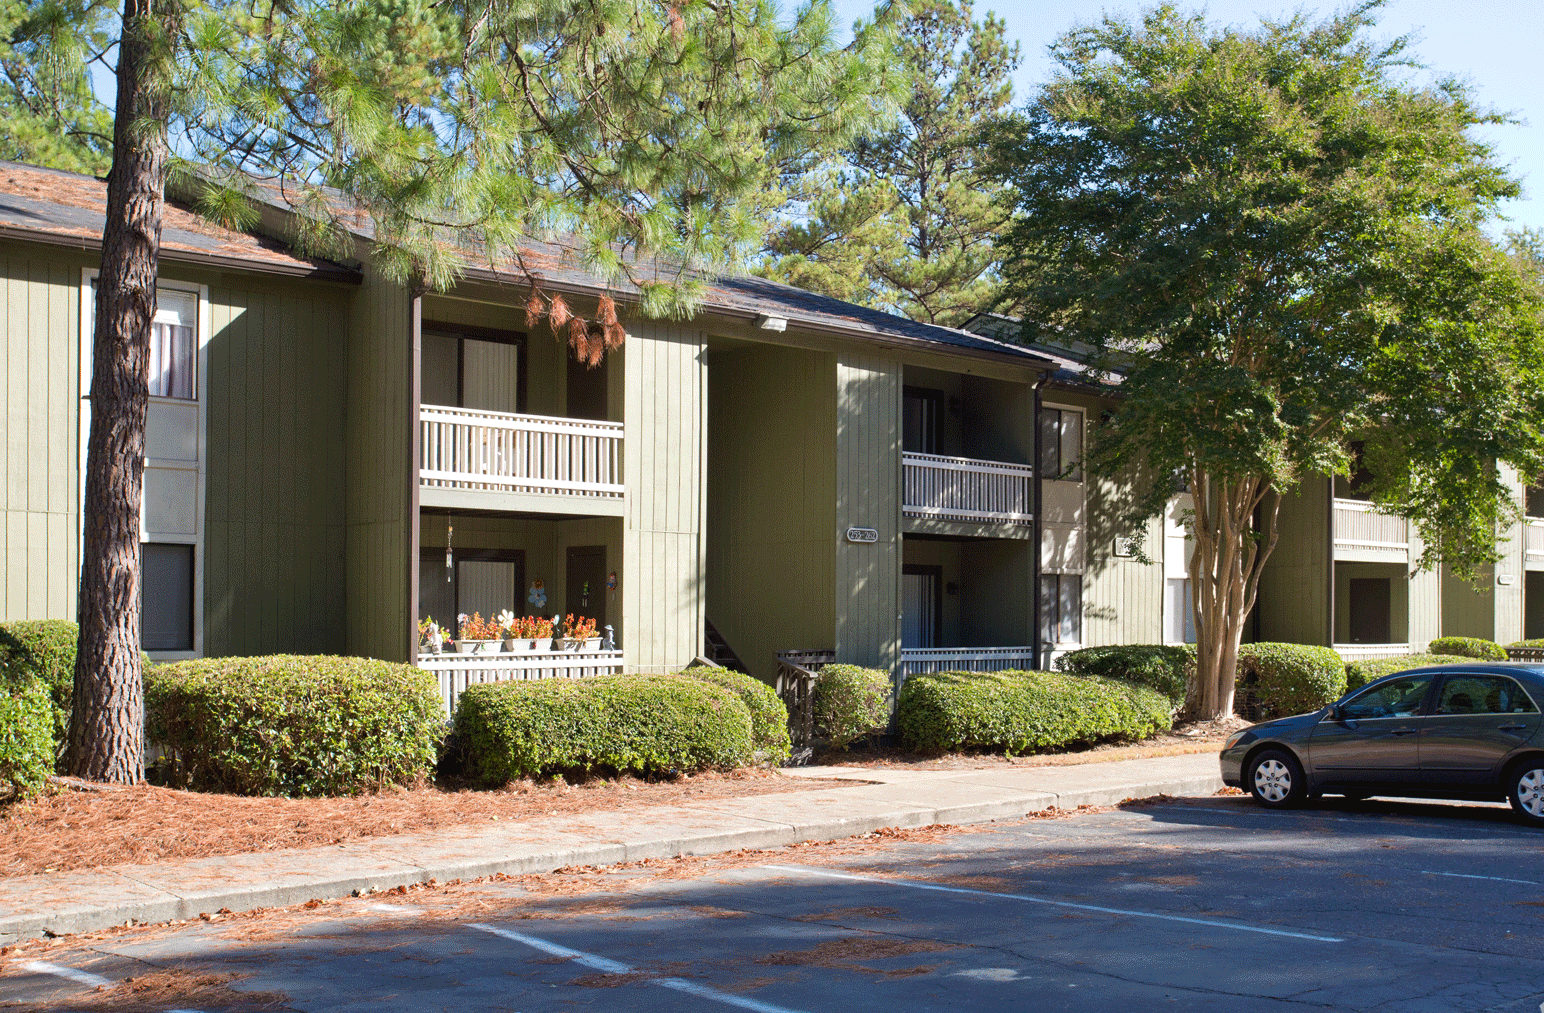 The Affinity 3700 Formally Willow Creek Apartments Apartments In Colmbus Ga